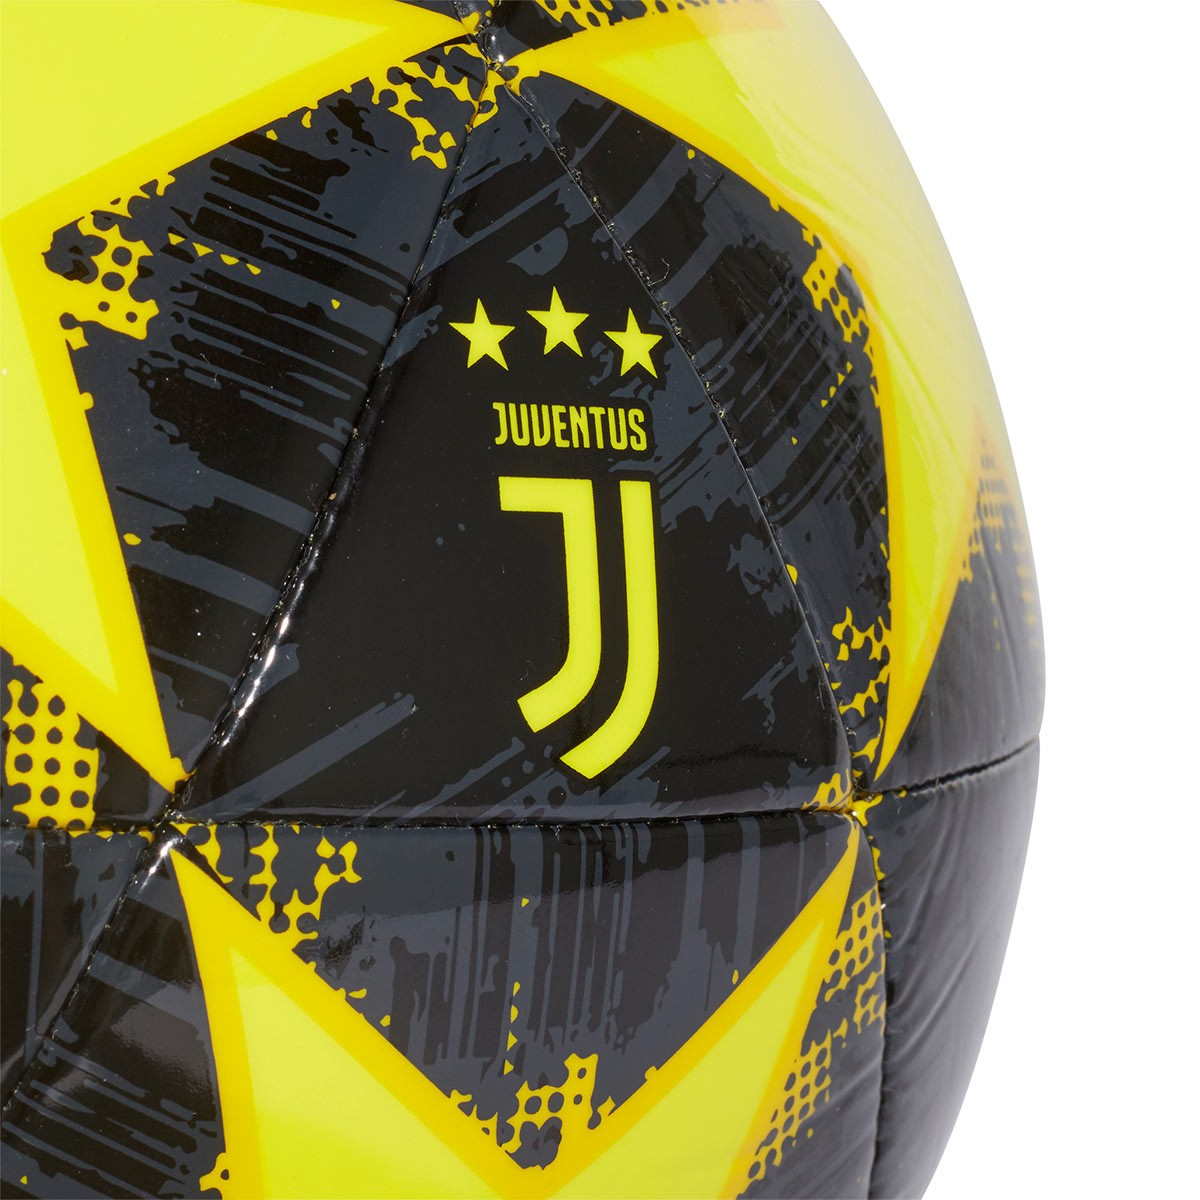 cb74e6f416c Ball adidas Finale18 Juventus Capitano 2018-2019 Shock  yellow-Yellow-Carbon-Black - Football store Fútbol Emotion